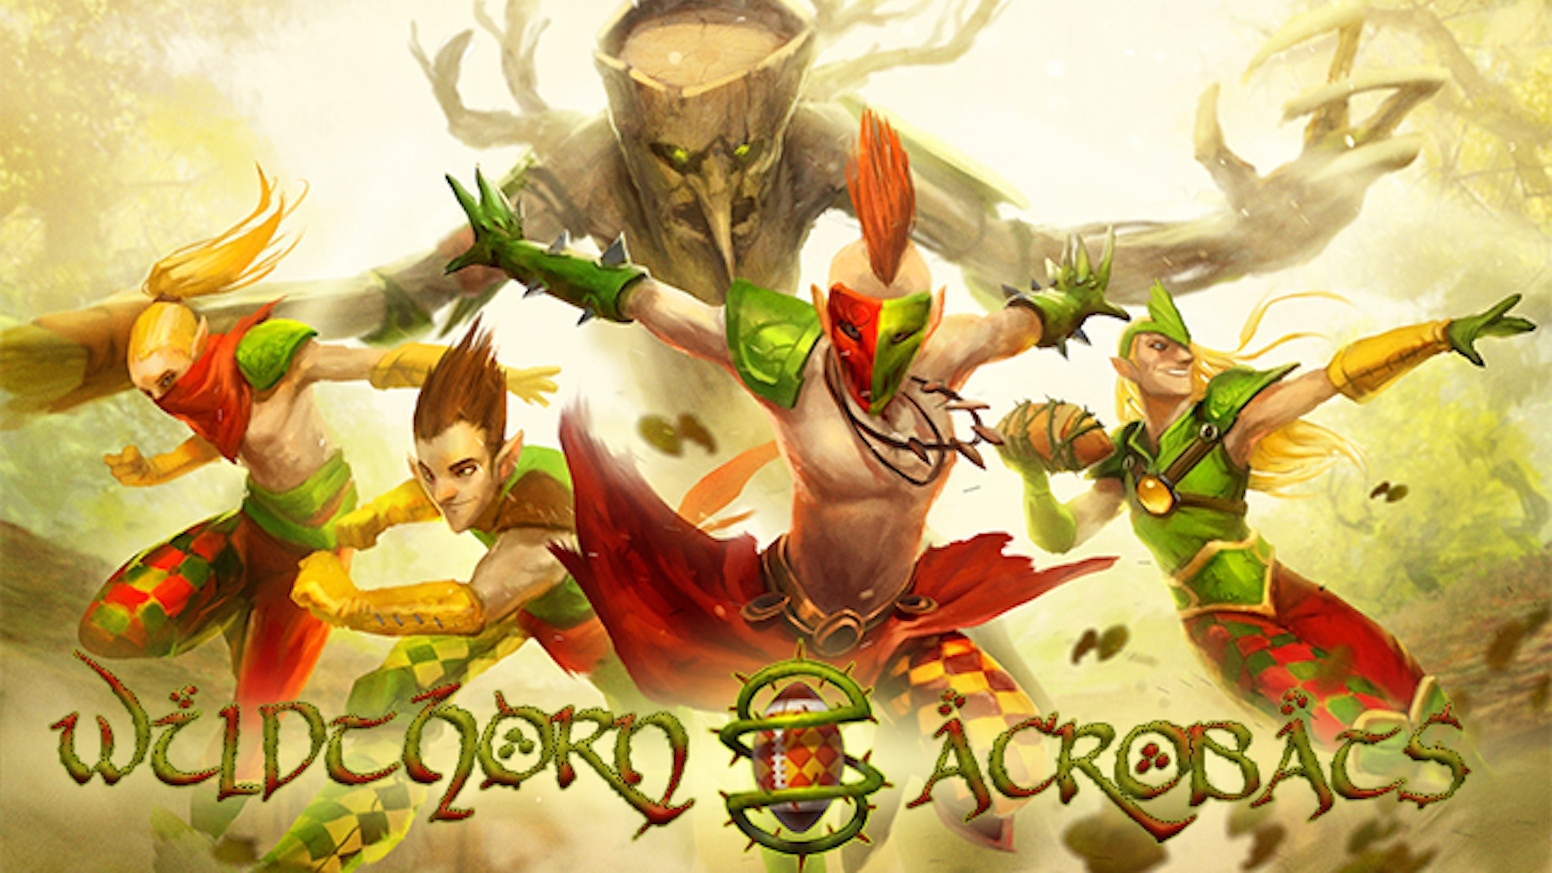 We're proud to introduce the Wildthorn Acrobats! A project to create a high quality Fantasy Football wood elf team in 32mm scale.